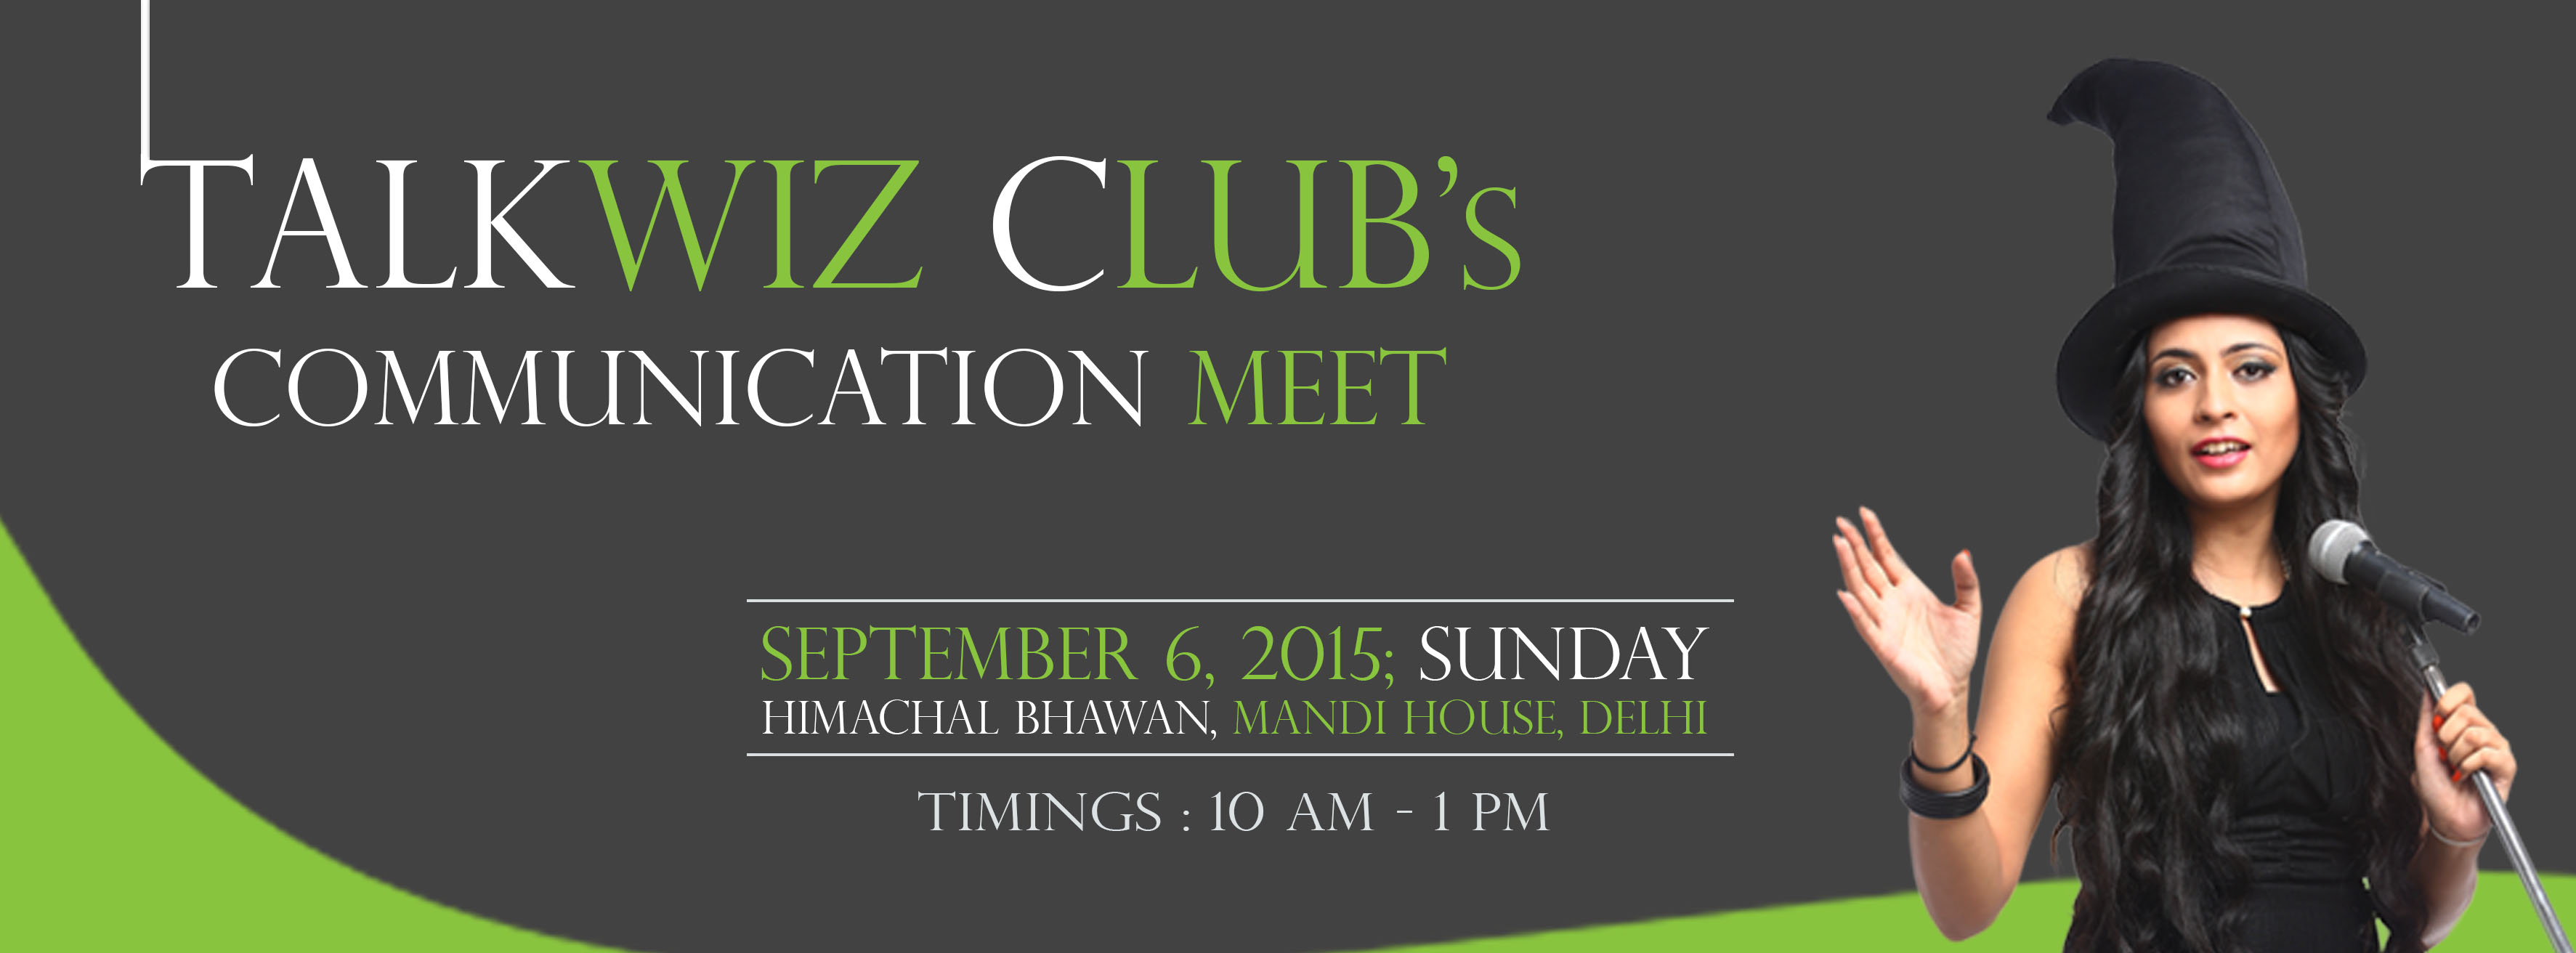 Talkwiz Clubs Communication Meet